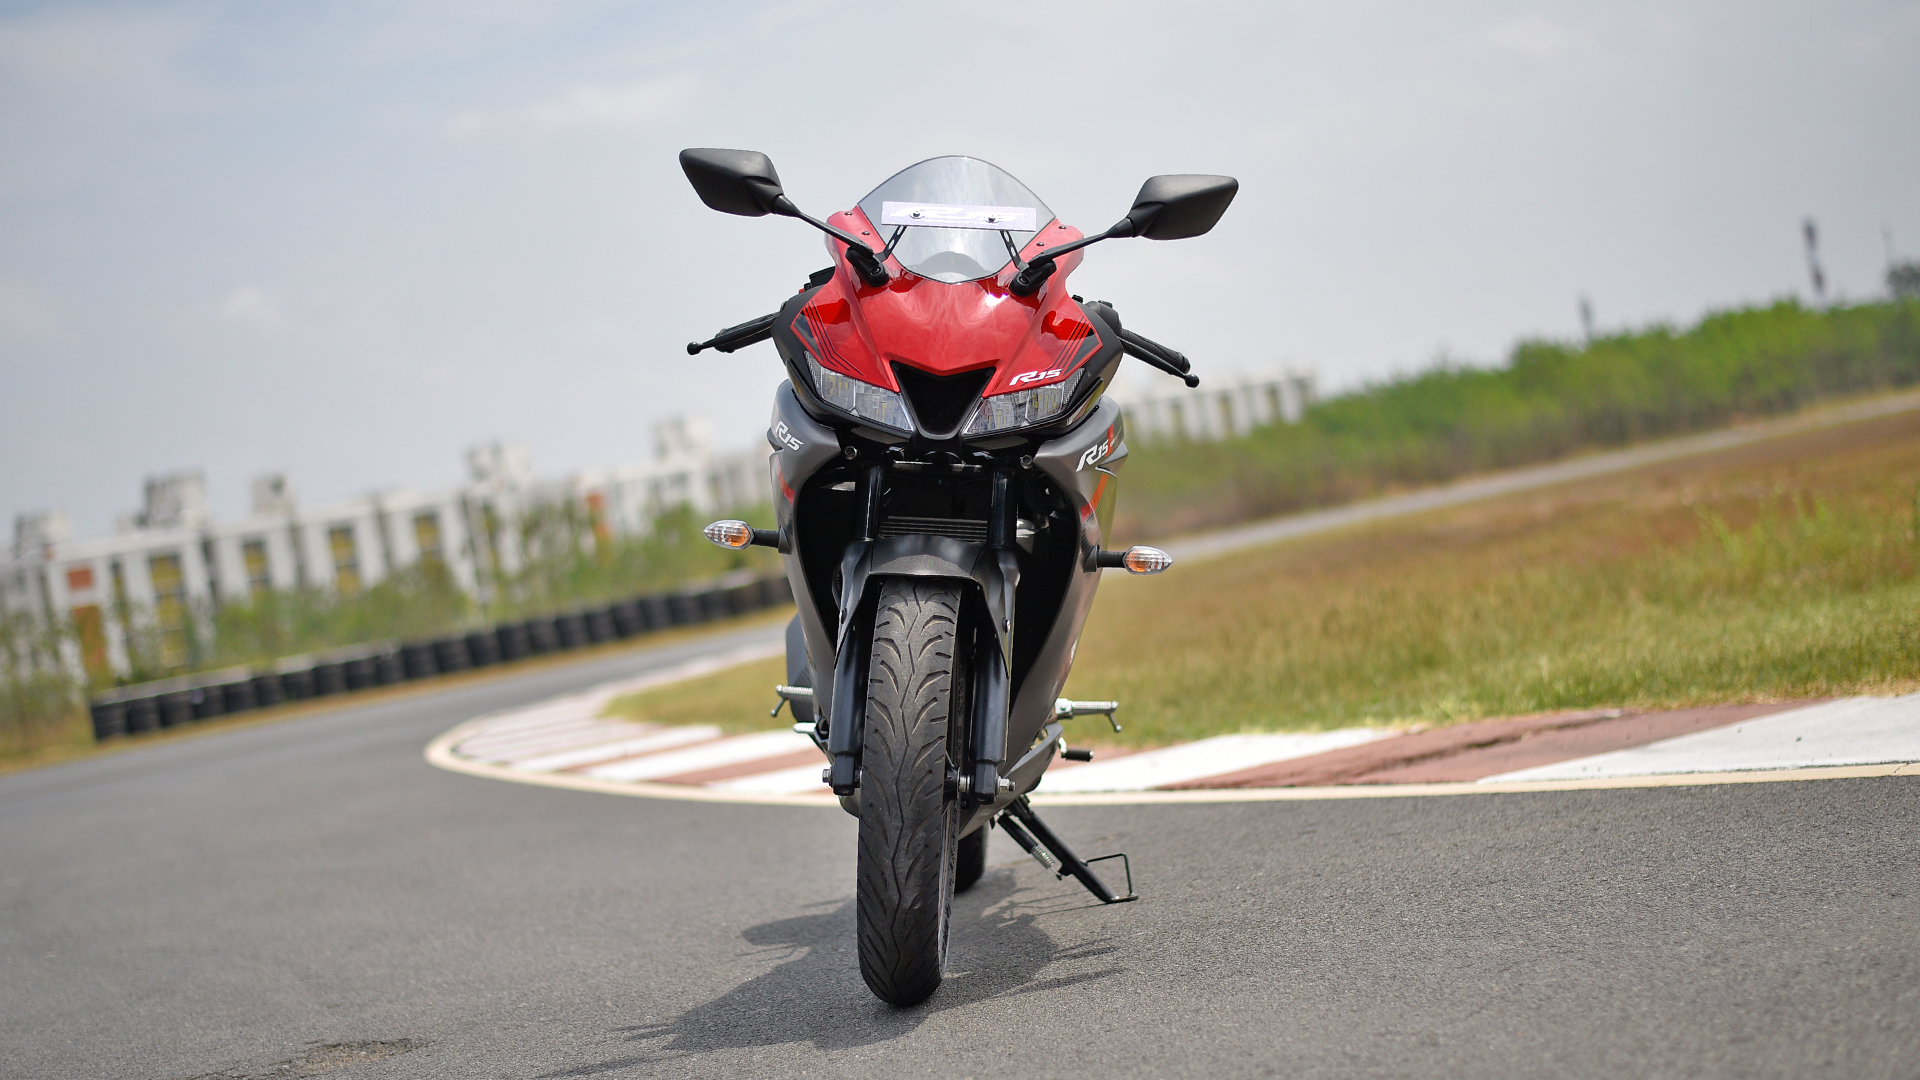 Yamaha Yzf R15 V3 2018 Price Mileage Reviews Specification Gallery Overdrive